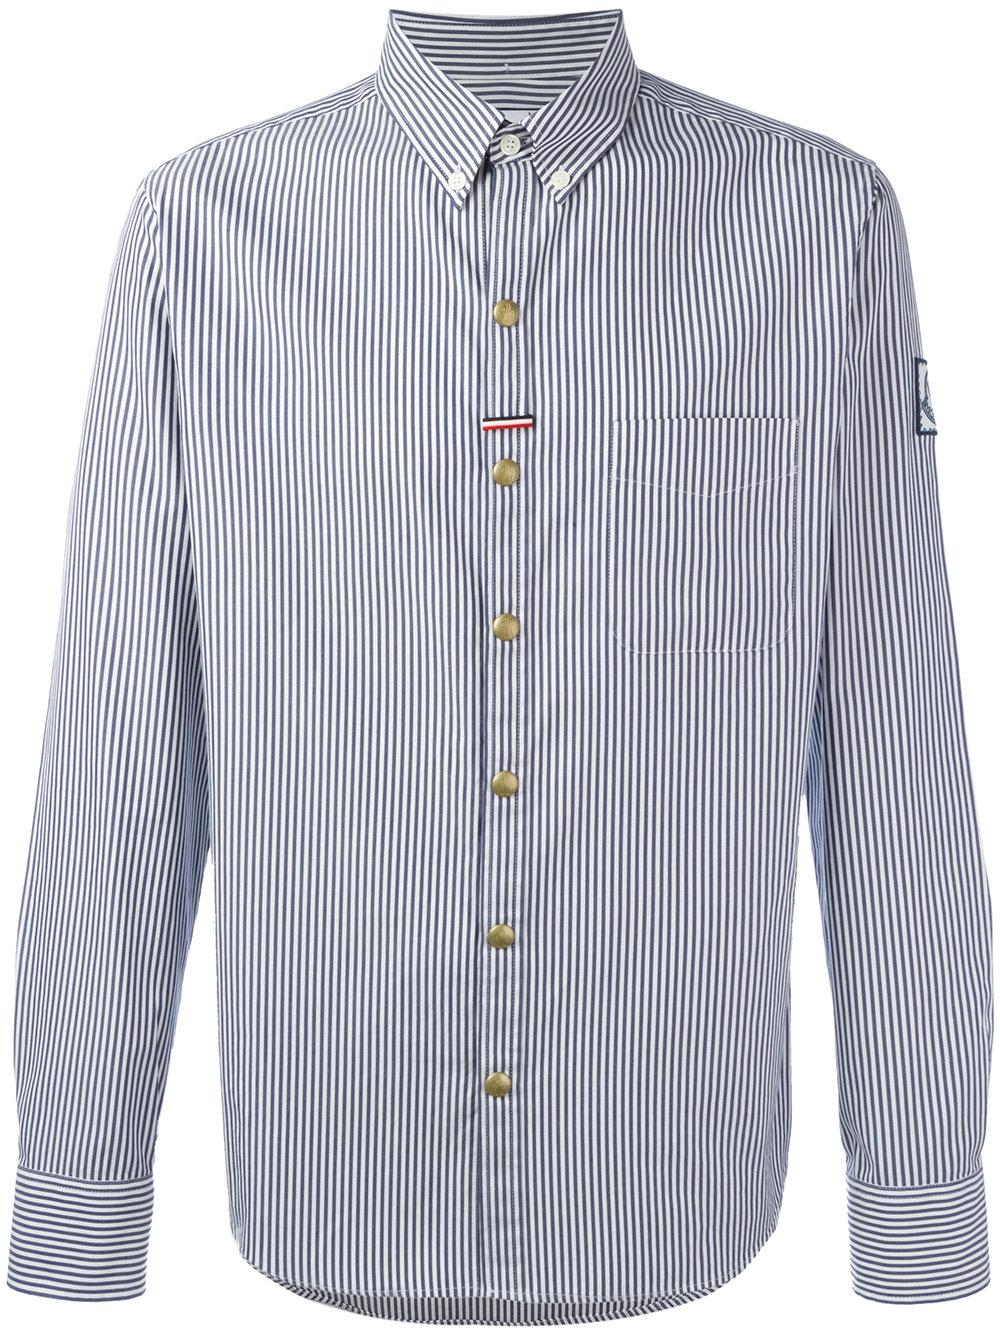 Moncler grenoble striped button down shirt in blue for men for Striped button down shirts for men